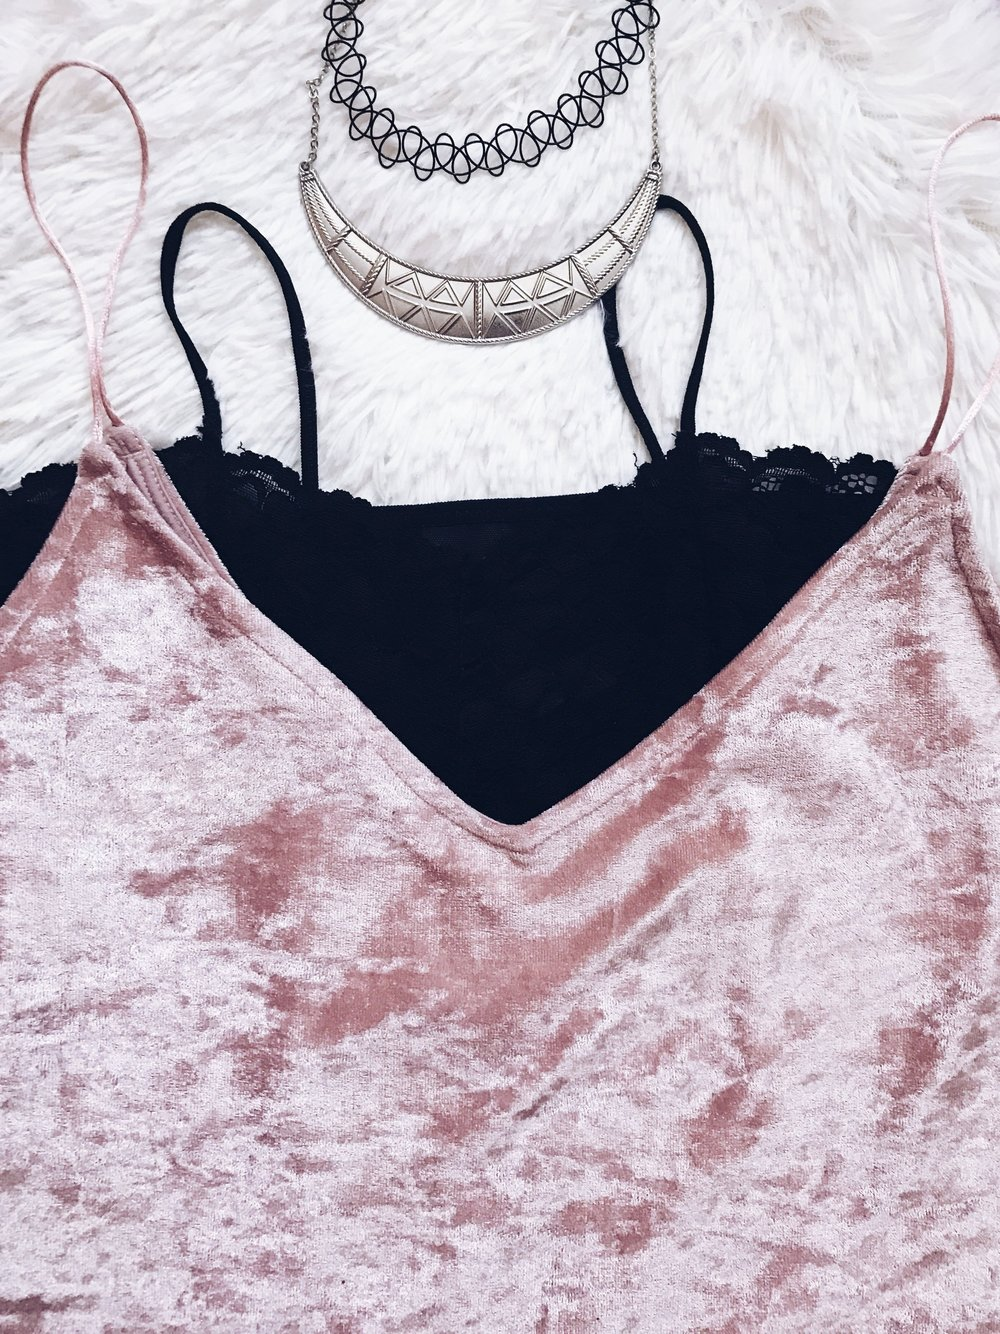 crushed velvet rose gold top black lace bralette outfit ootd choker necklace jewelry flatlay style fashion arockchicklife